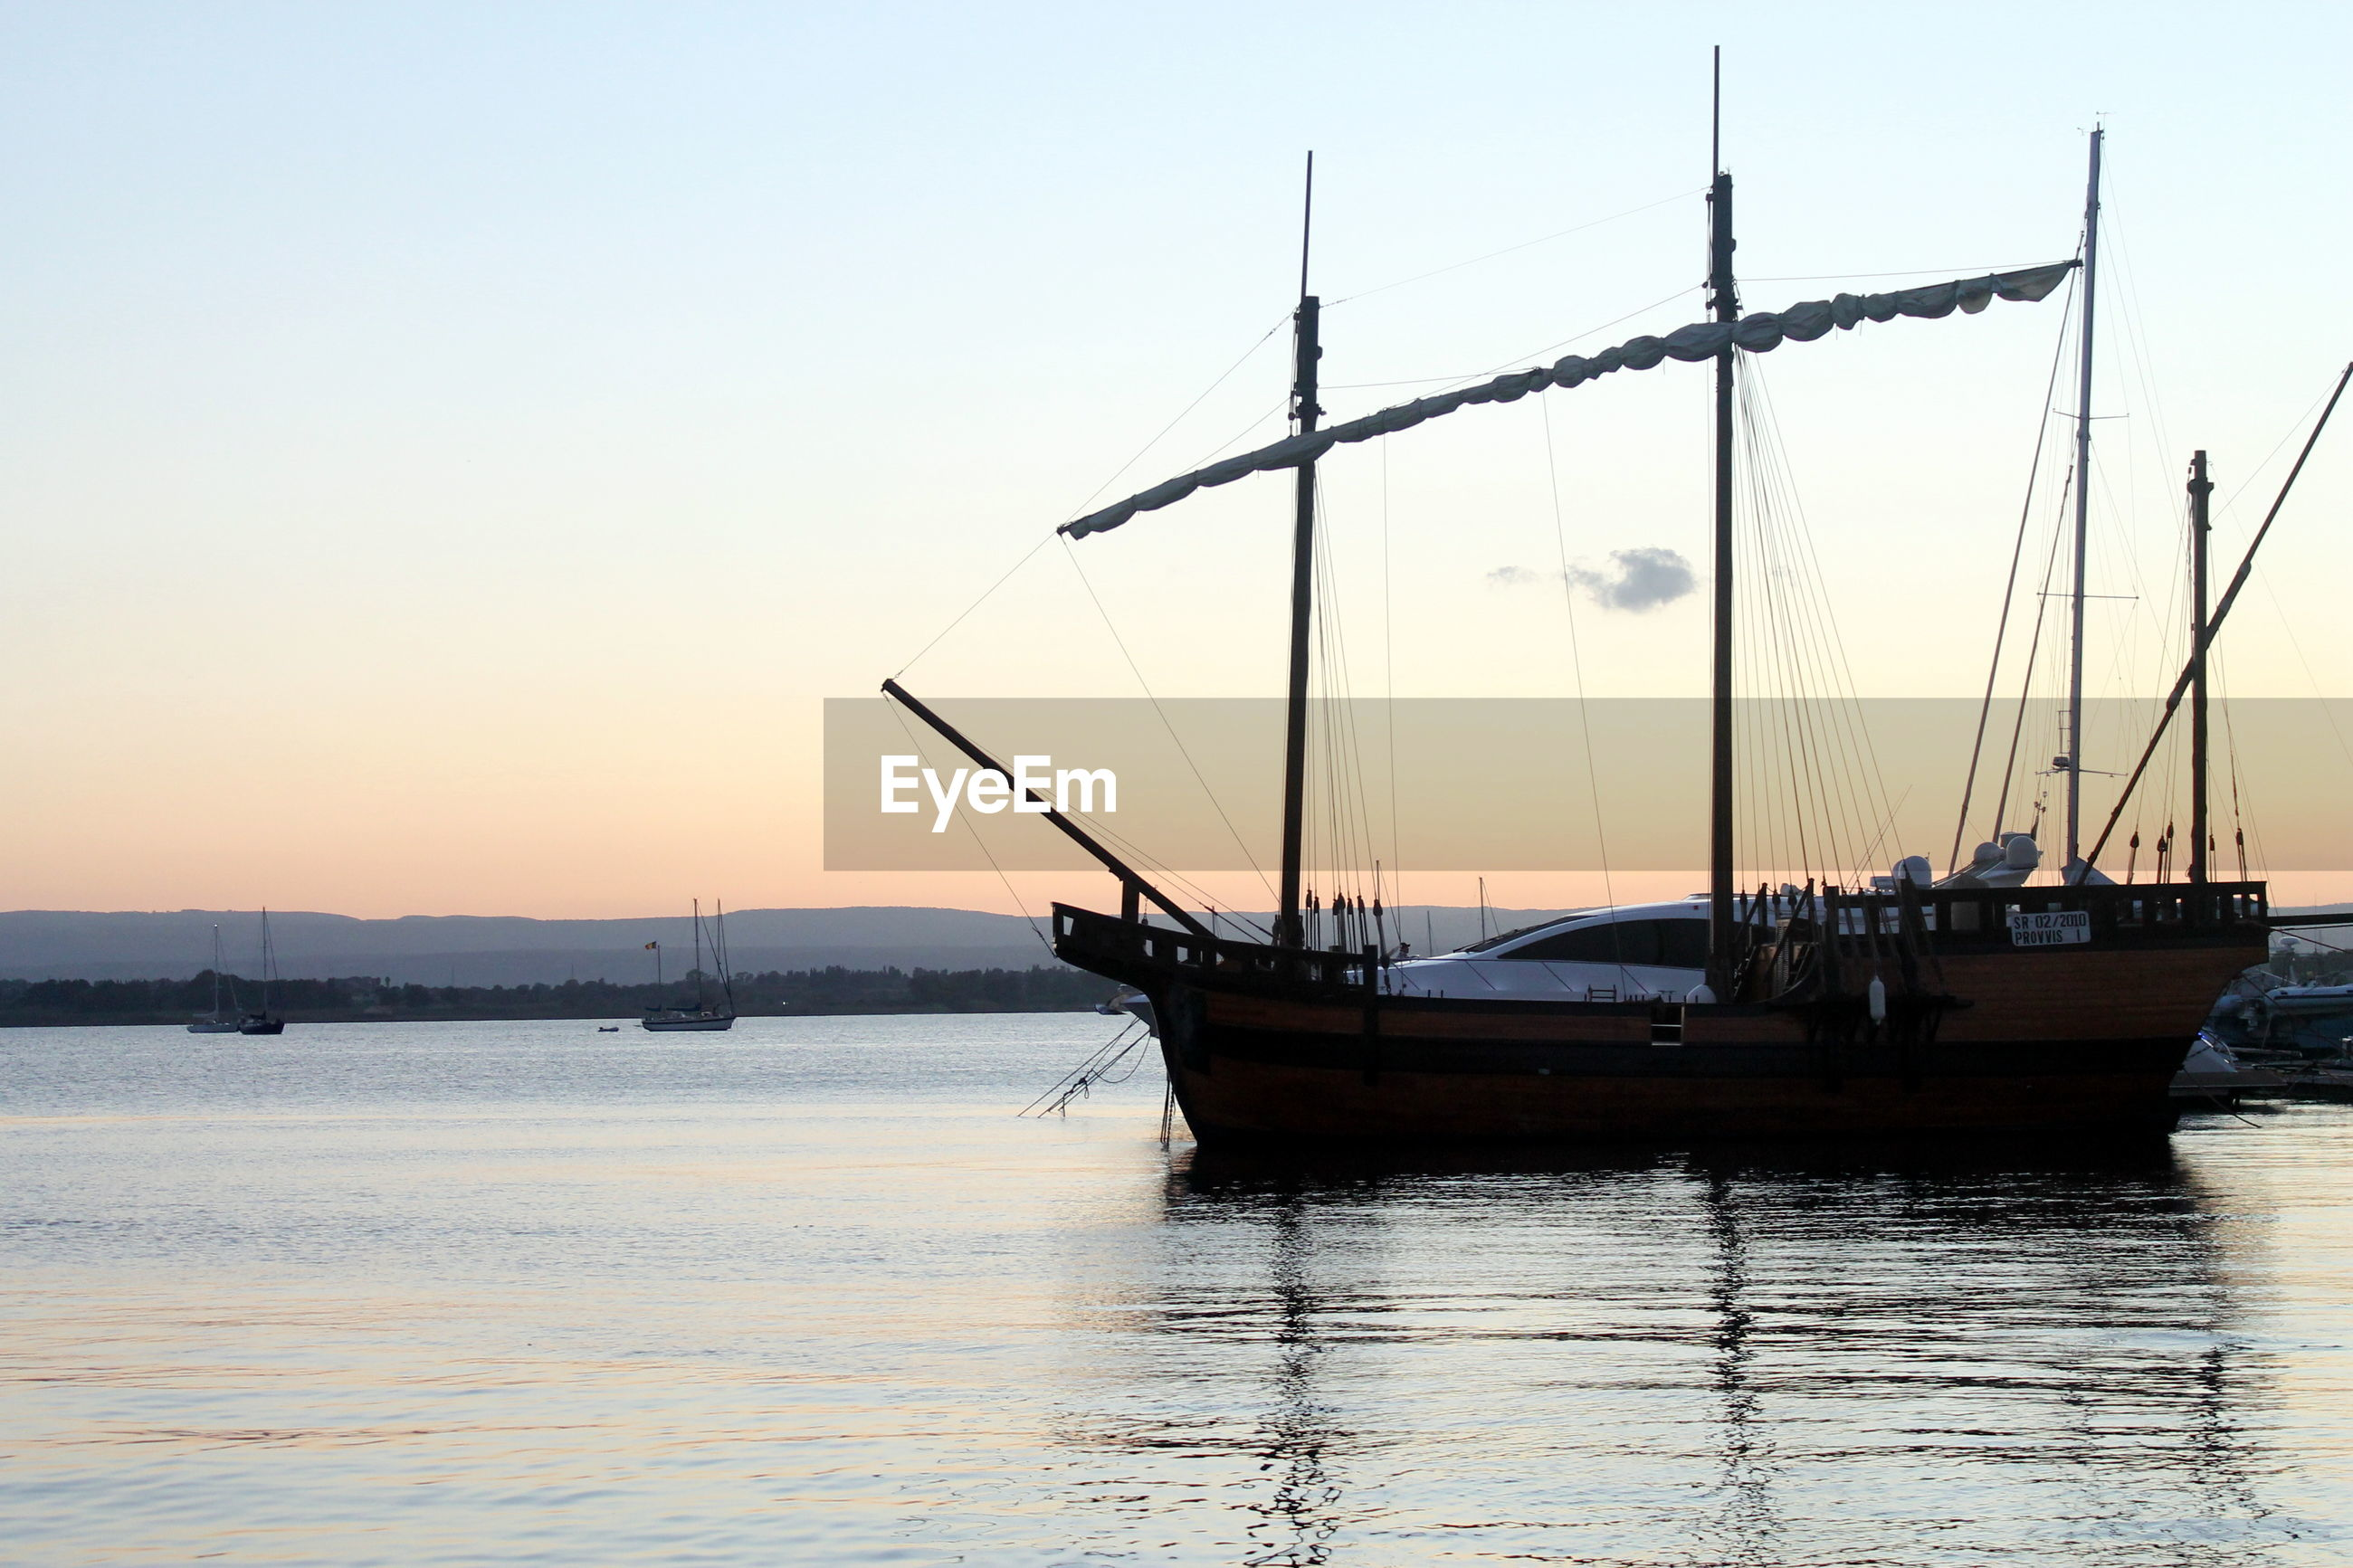 SILHOUETTE OF NAUTICAL VESSEL ON SEA AGAINST CLEAR SKY